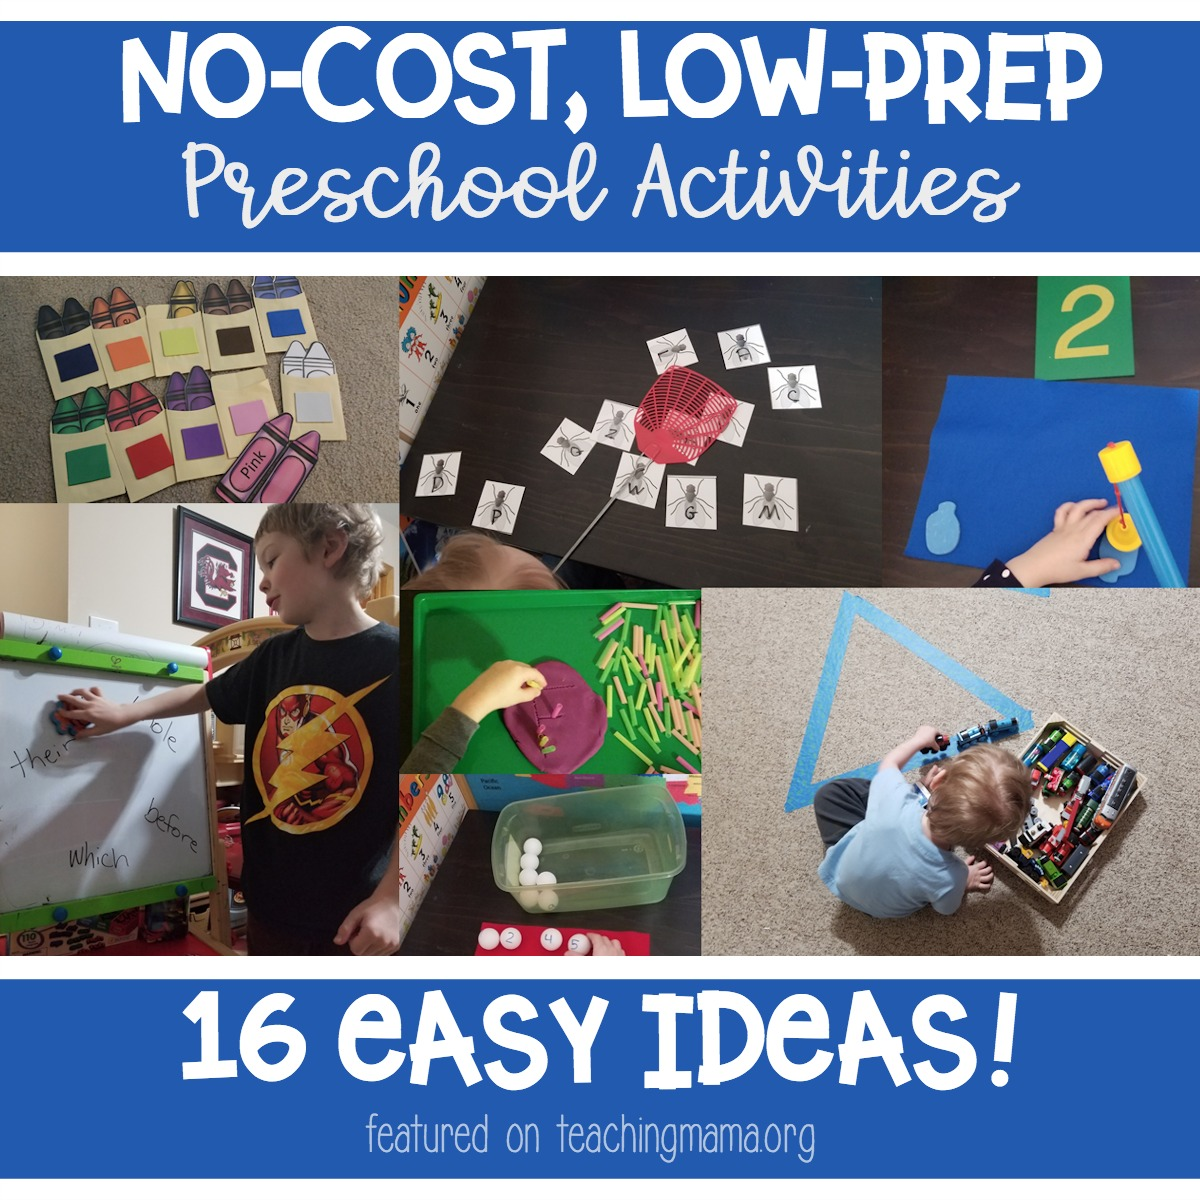 No-cost, low-prep preschool activities